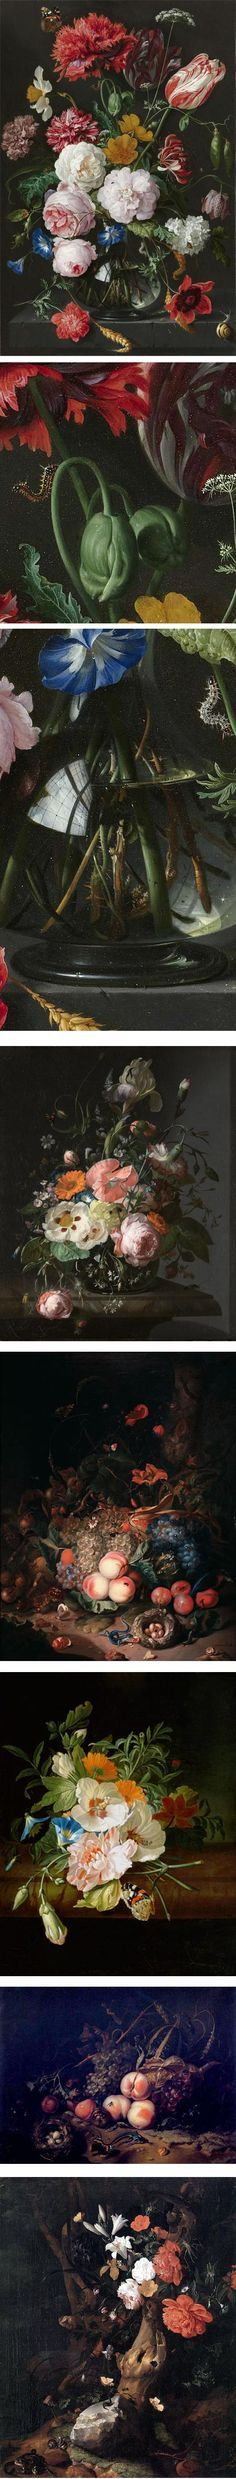 """Rachel Ruysch. linesandcolors: """"Dutch painter Rachel Ruysch, whose life and career straddled the seventeenth and eighteeth centuries, was renowned for her striking still life paintings of flowers, which occasionally featured fruit and crystal glassware. """""""